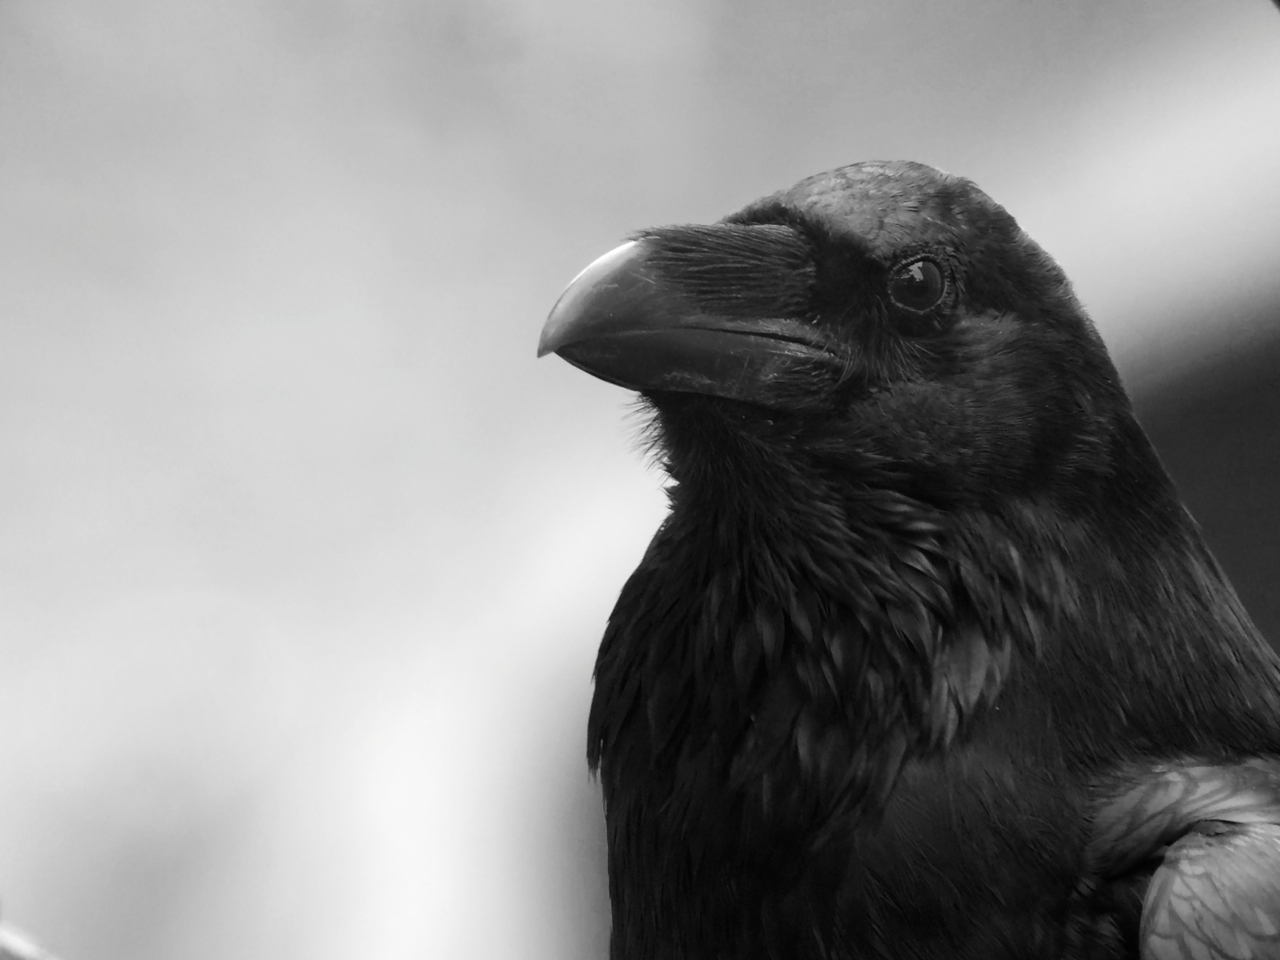 Beware the mind of a raven.